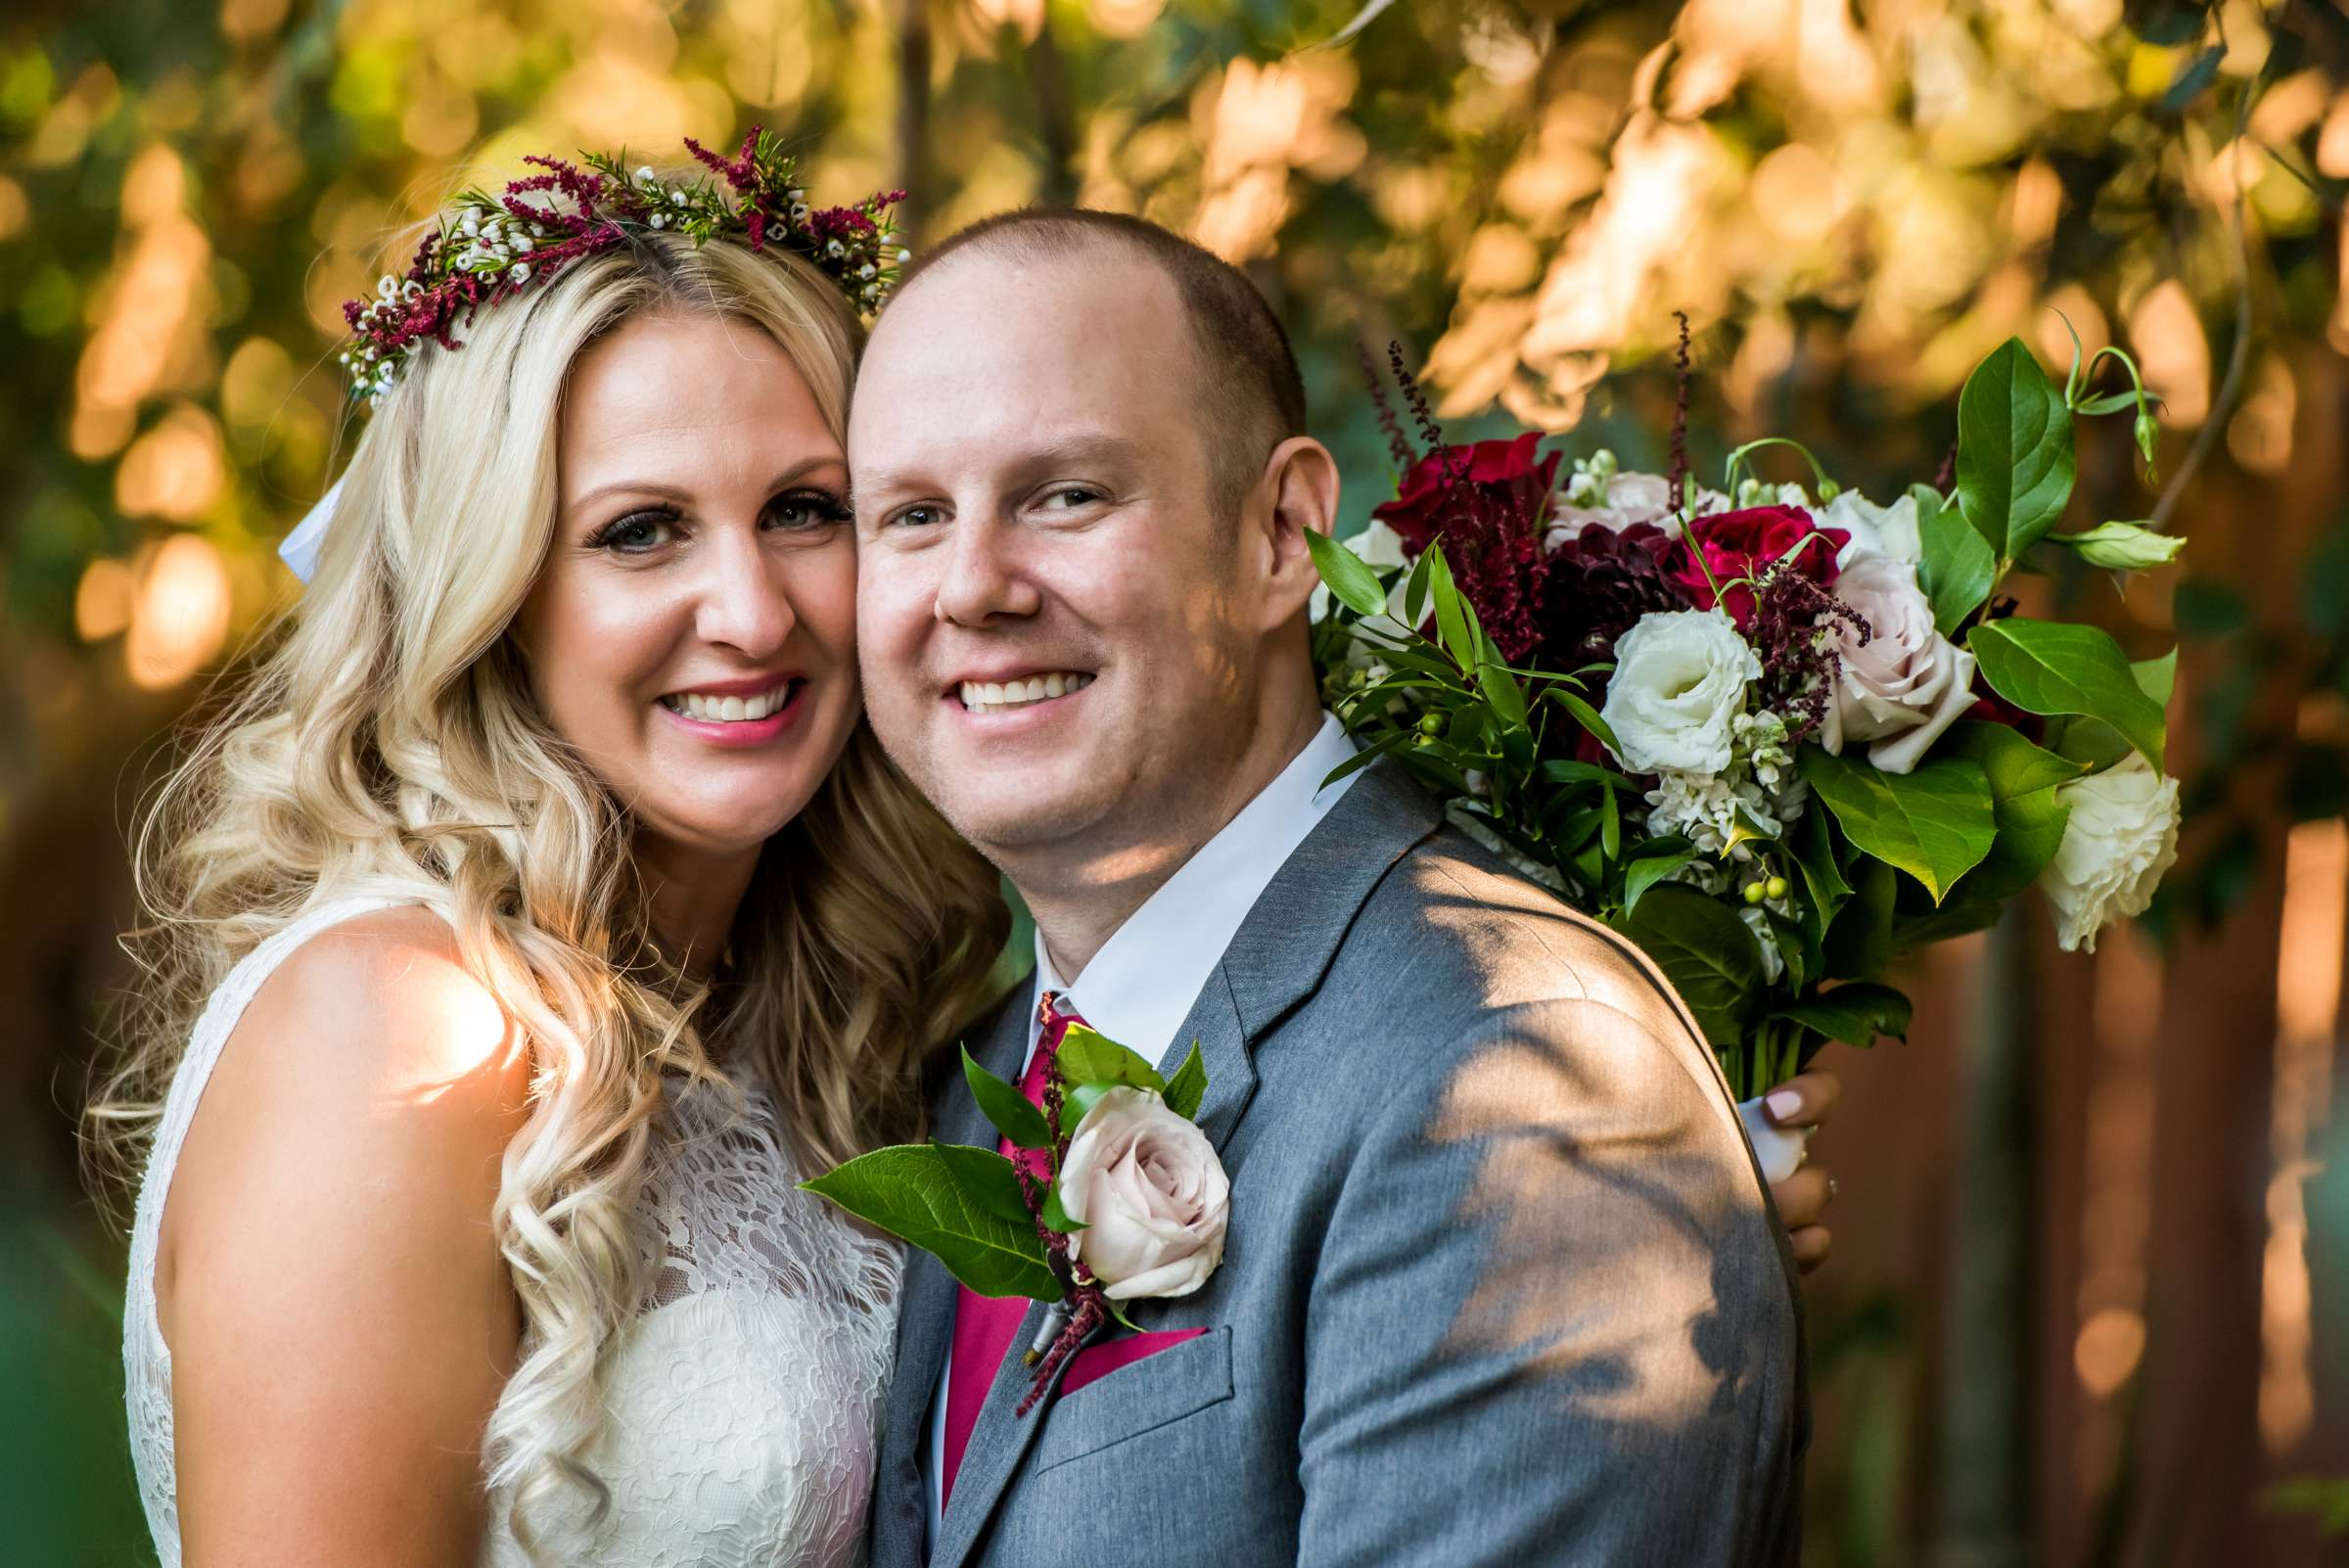 Twin Oaks House & Gardens Wedding Estate Wedding, Brittany and Sean Wedding Photo #35 by True Photography